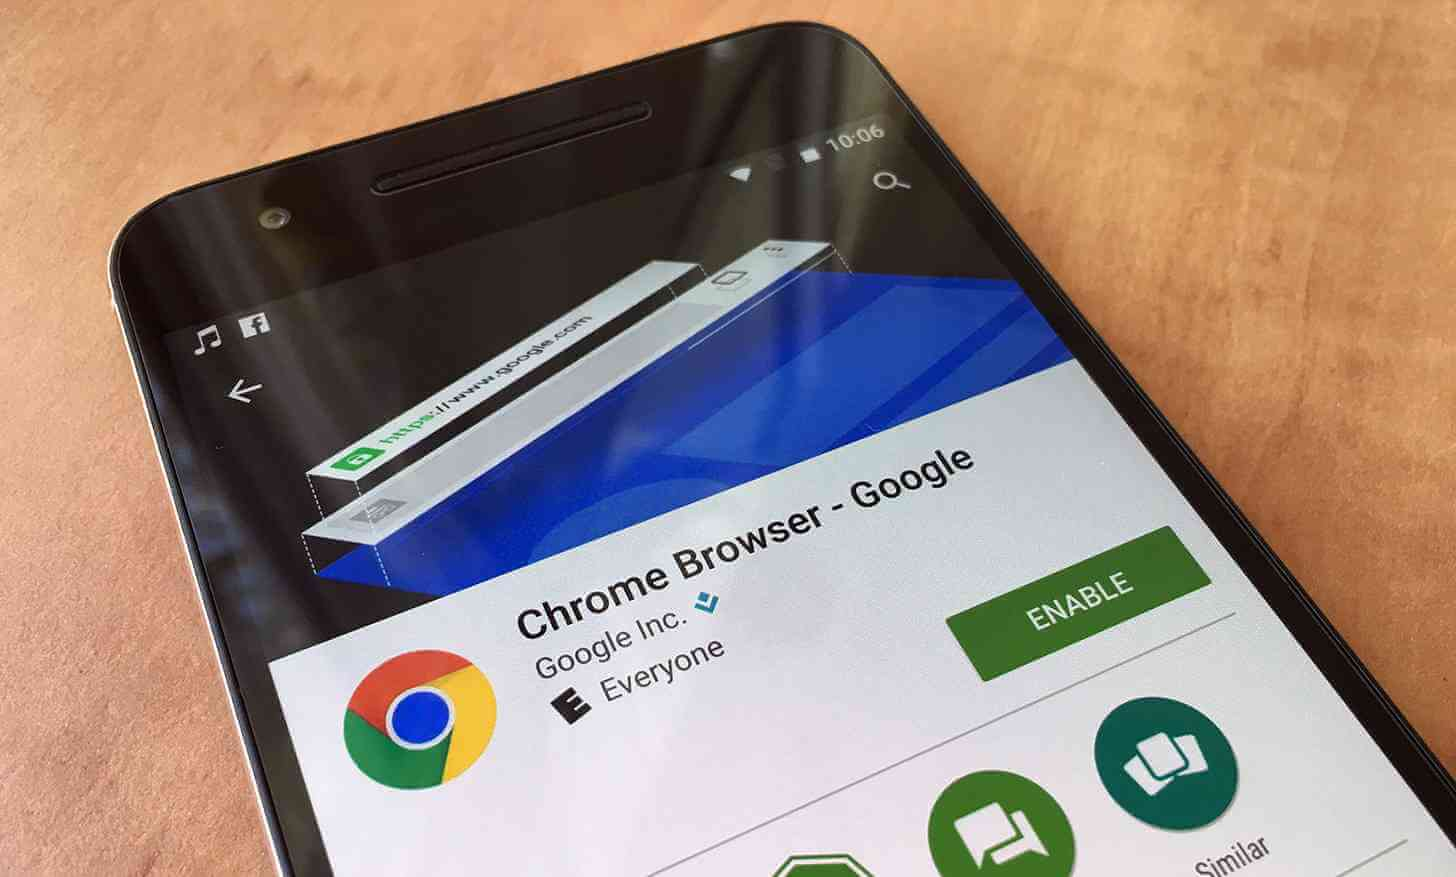 Chrome on Android to label sites that load quickly